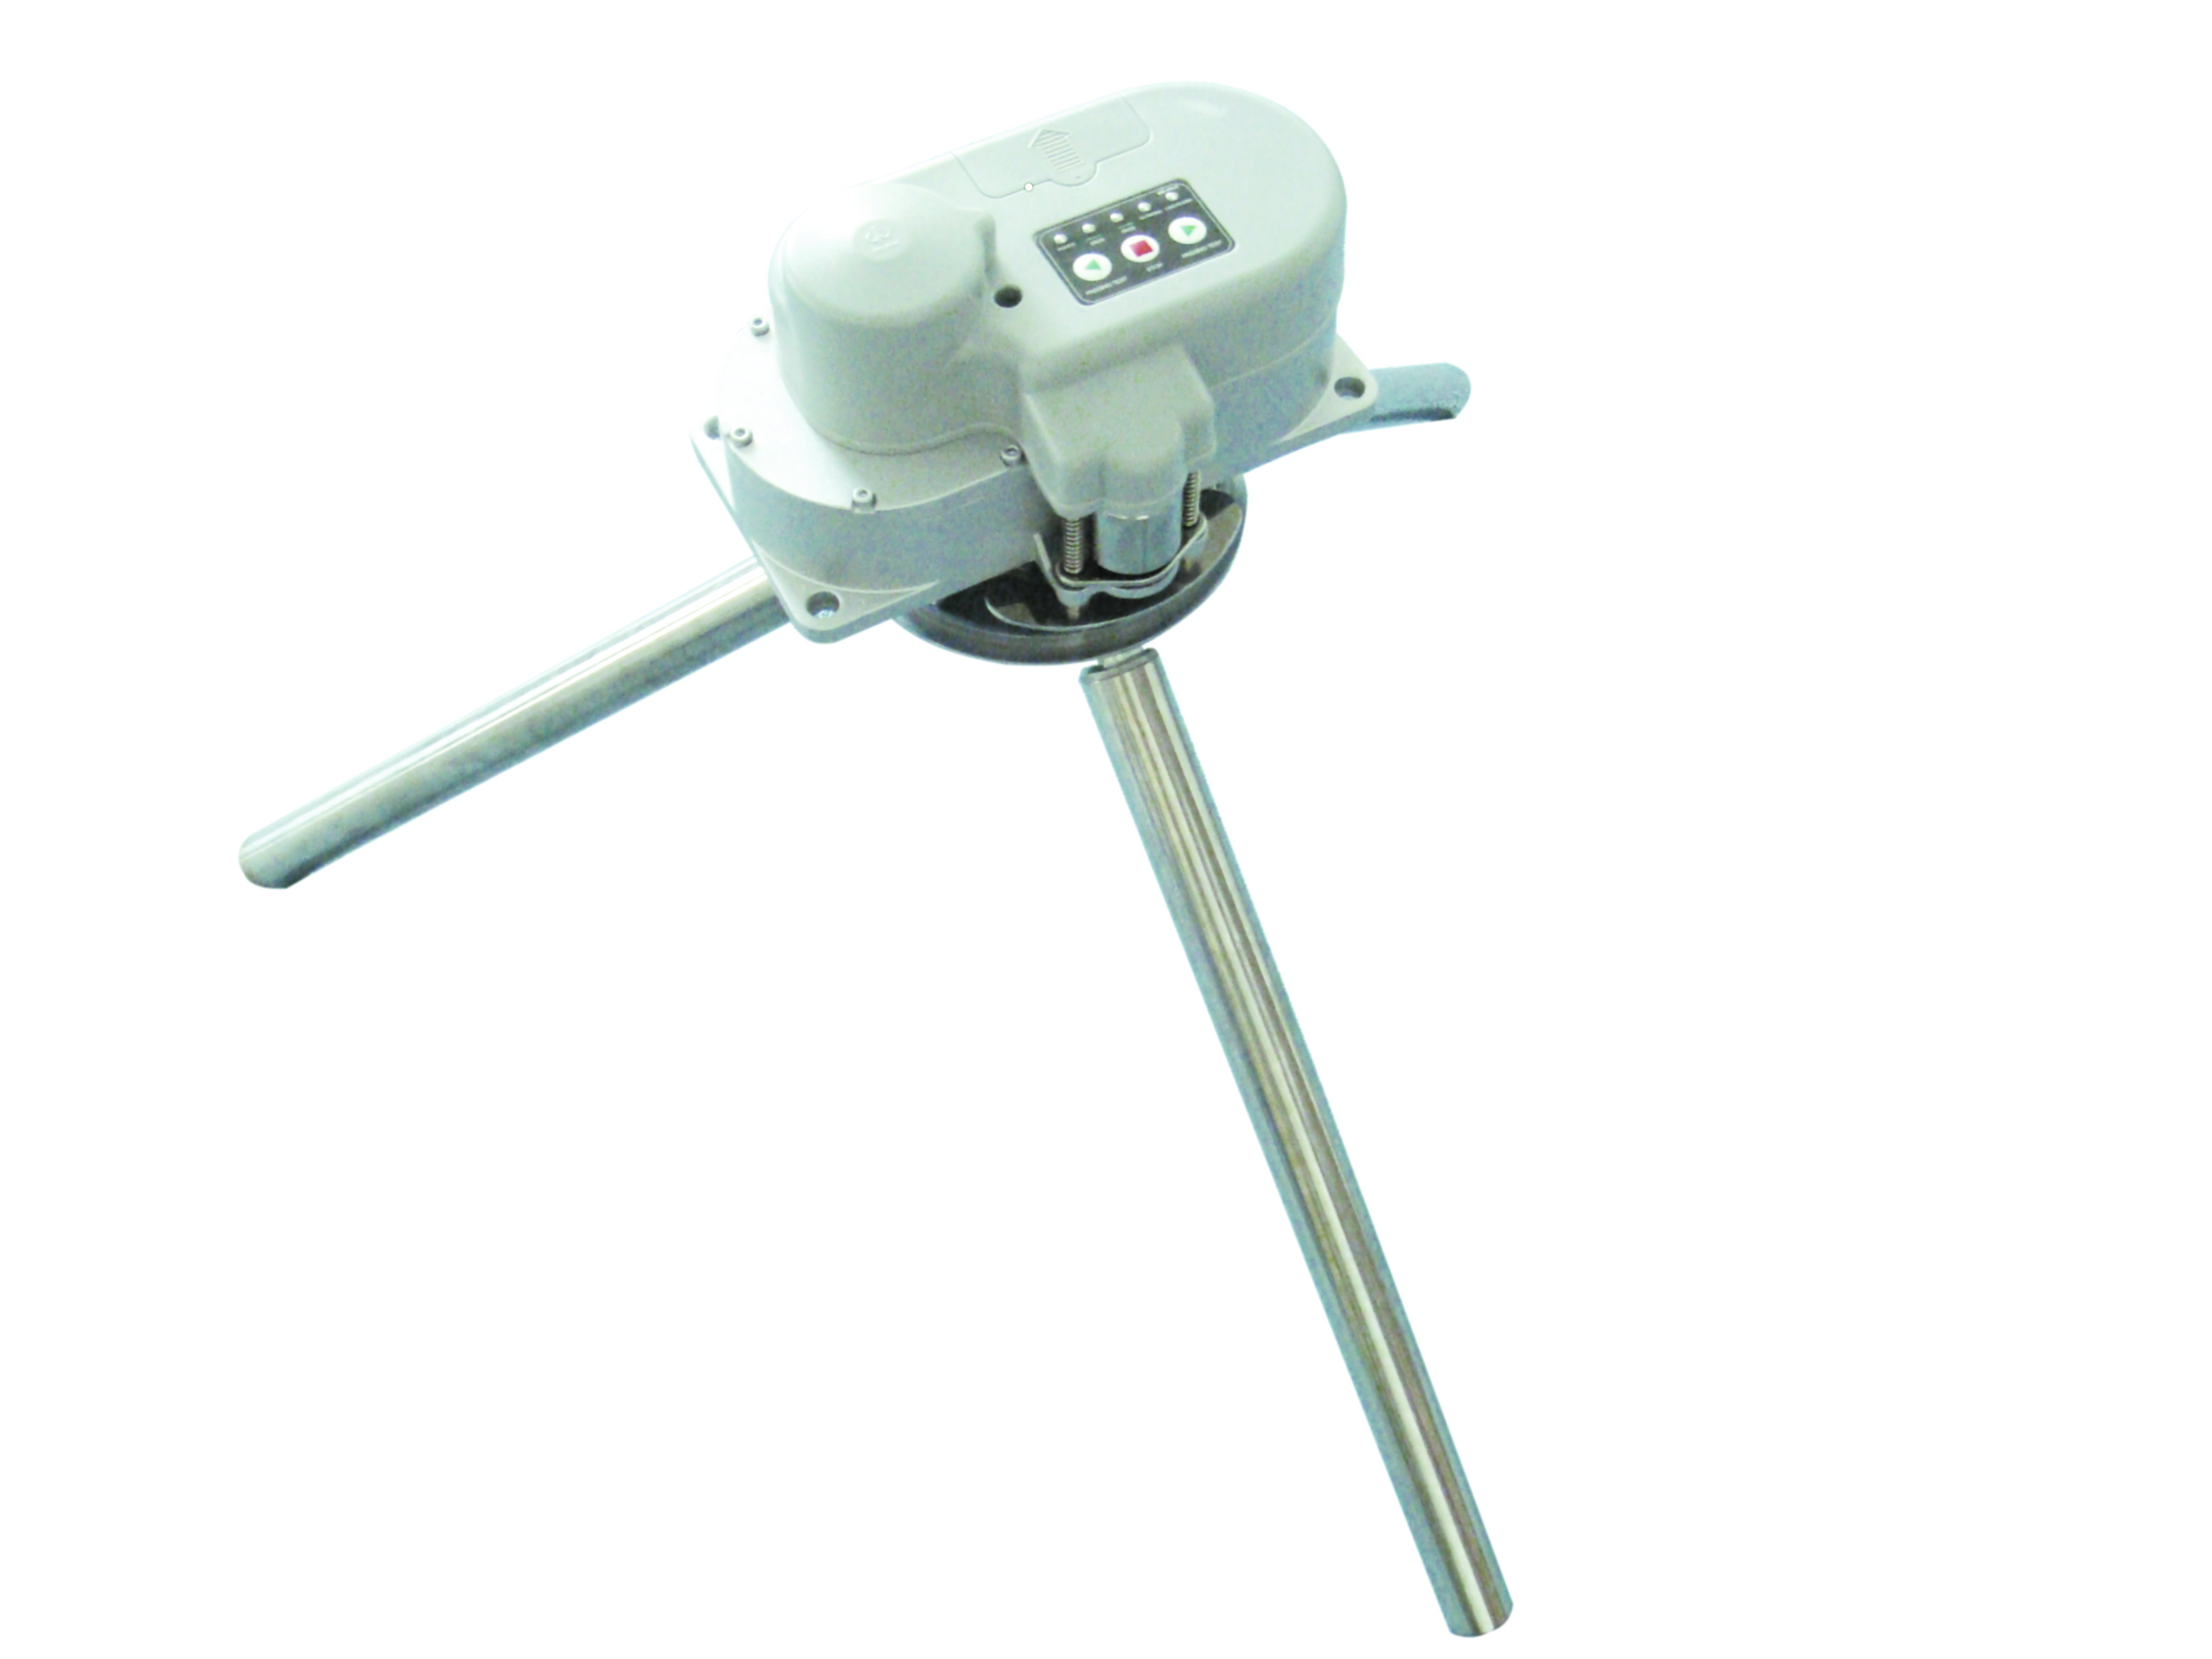 Full Automatic Tripod Turnstile Mechanism including tripod arms control board and motor snow tripod